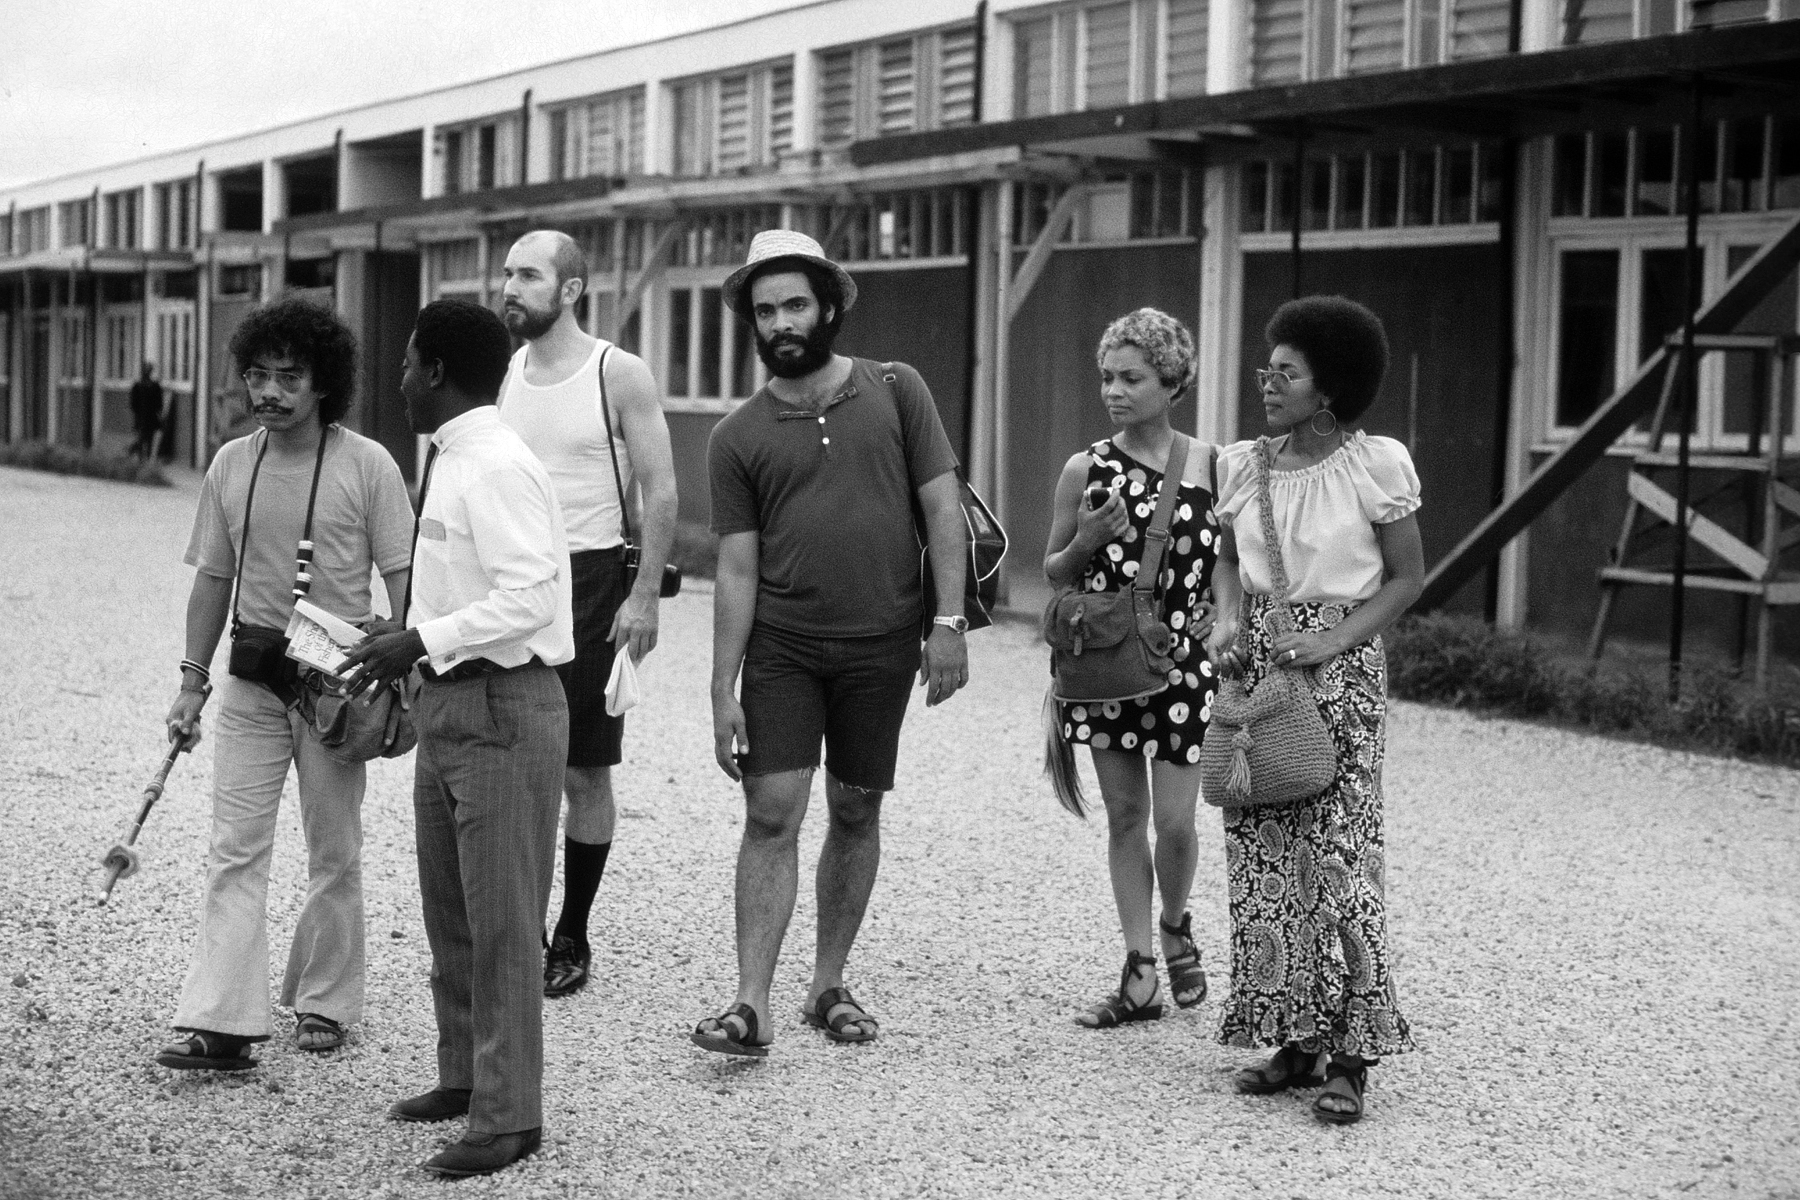 This photo, taken in front of the Kwame Nkrumah University of Science and Technology (KNUST) Department of Architecture in Kumasi shows some of the Kinne Award recipients during the Ghana trip. In addition to KNUST, the group toured the city of Accra, a slave castle, and various projects Max Bond had designed for the government, most notably the Bolgatanga Regional Library.  Left to right : Lloyd de Suze, Ghanaian professor, School of Architecture student, David Kirkwood, Sharon Egretta Sutton, and Marva Britt. Photo courtesy of Stanford R. Britt